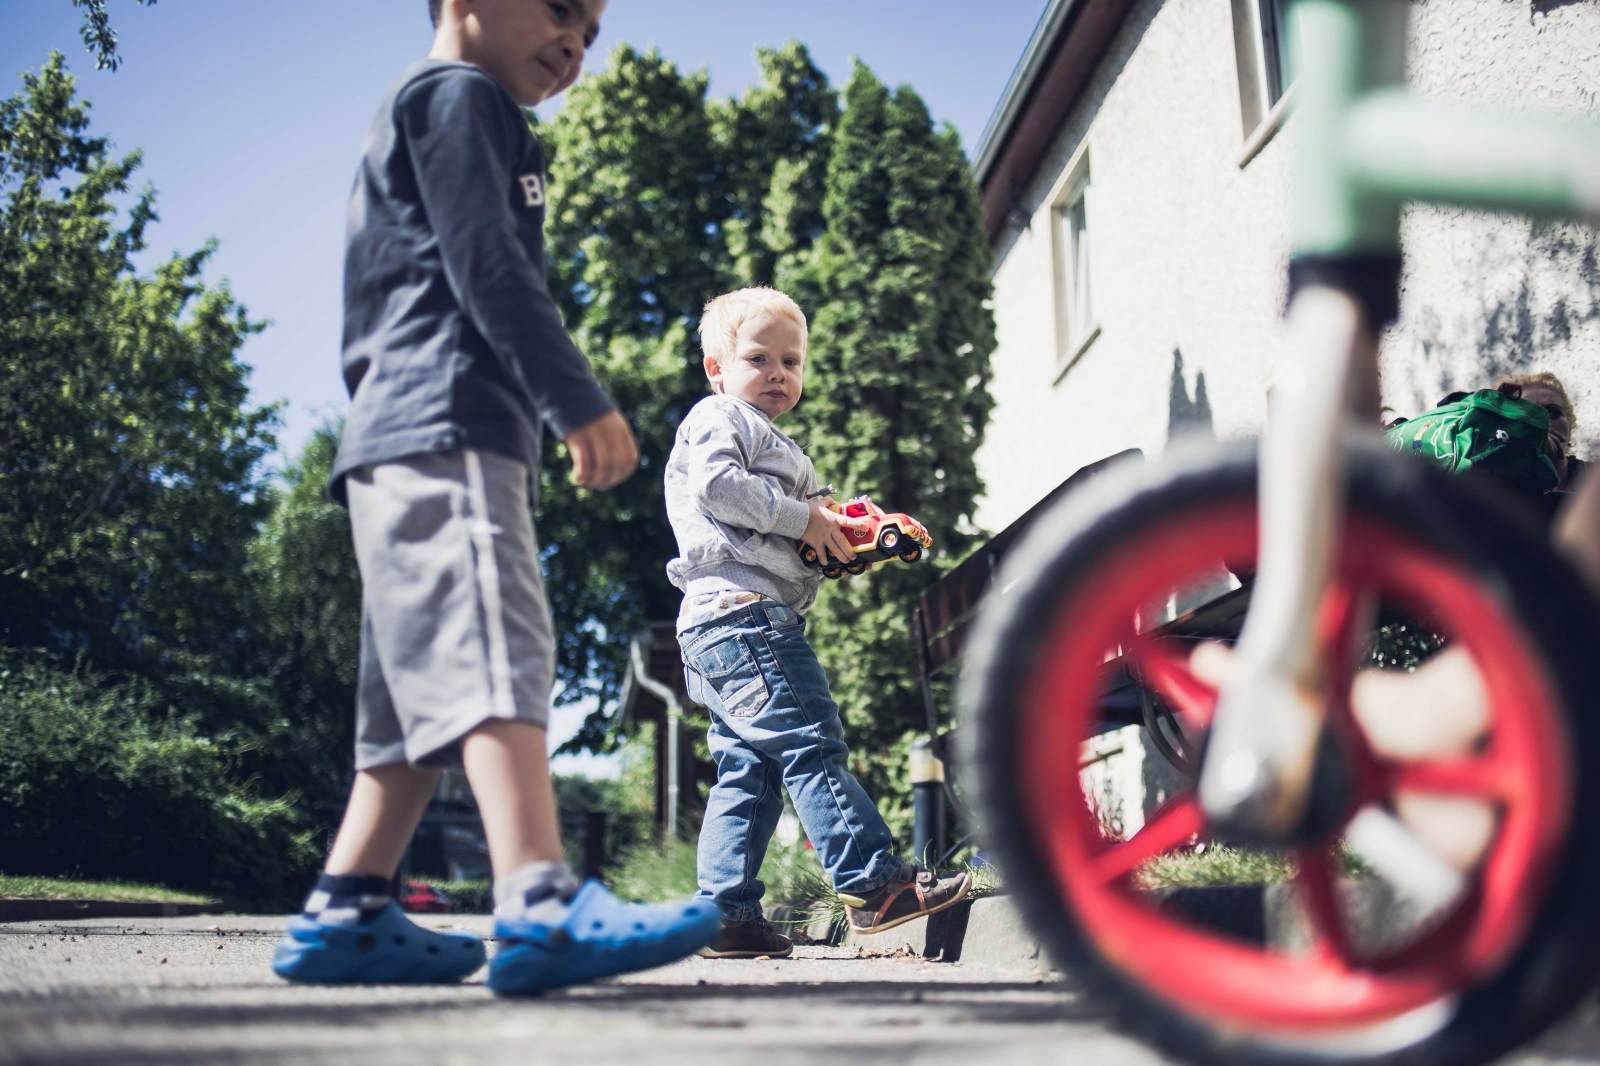 Oskar B., 3, plays with other kids at a safe house for women who have been subject to domestic violence. According to WHO 25% of German women have experienced sexual and/or violent assault in their relationships. Berlin, GERMANY, June 9, 2016.